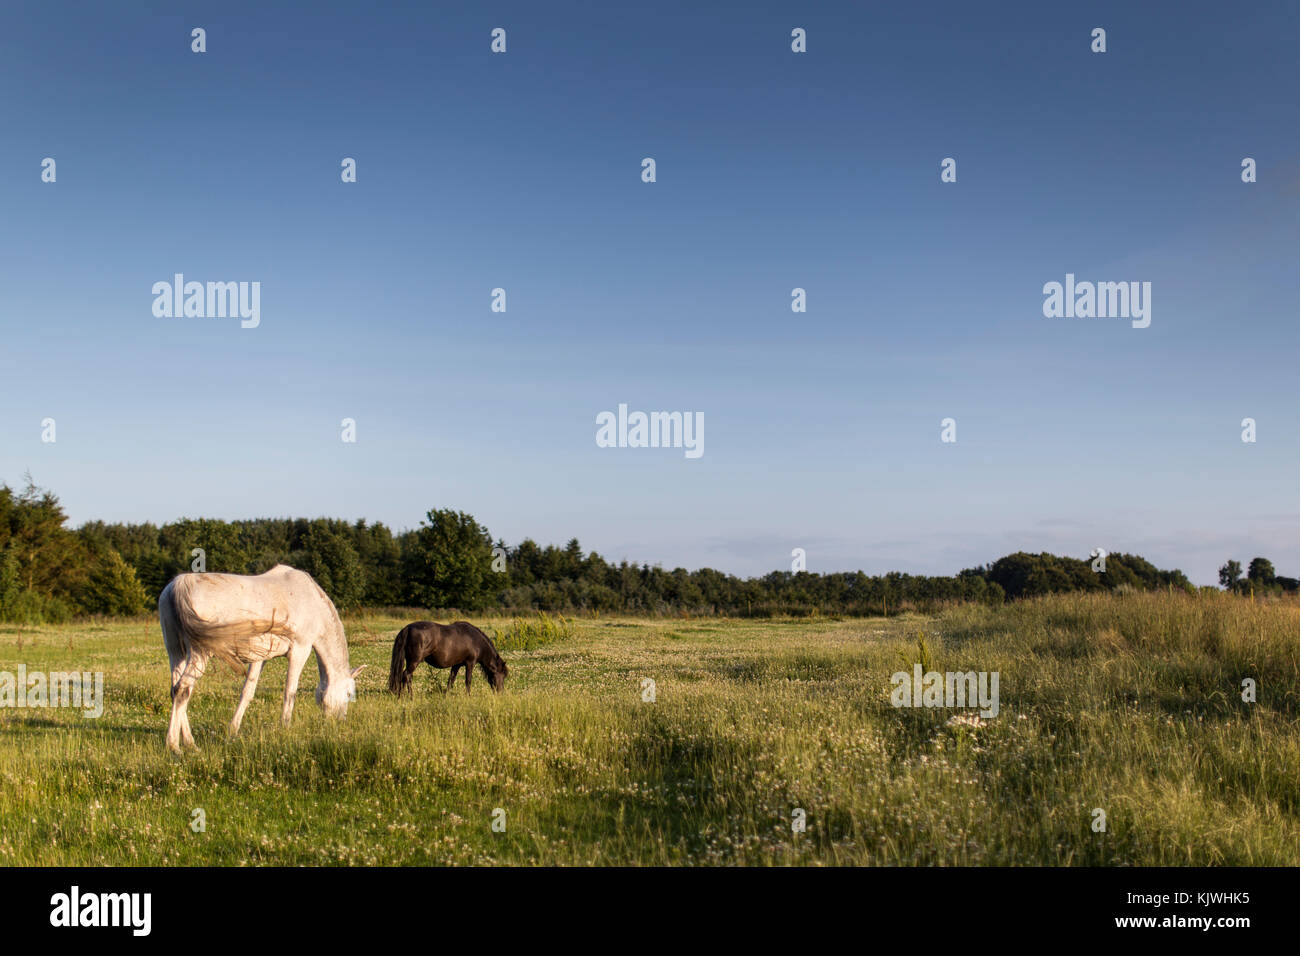 Horse and pony on grass field in summer time. Wideshot - Stock Image